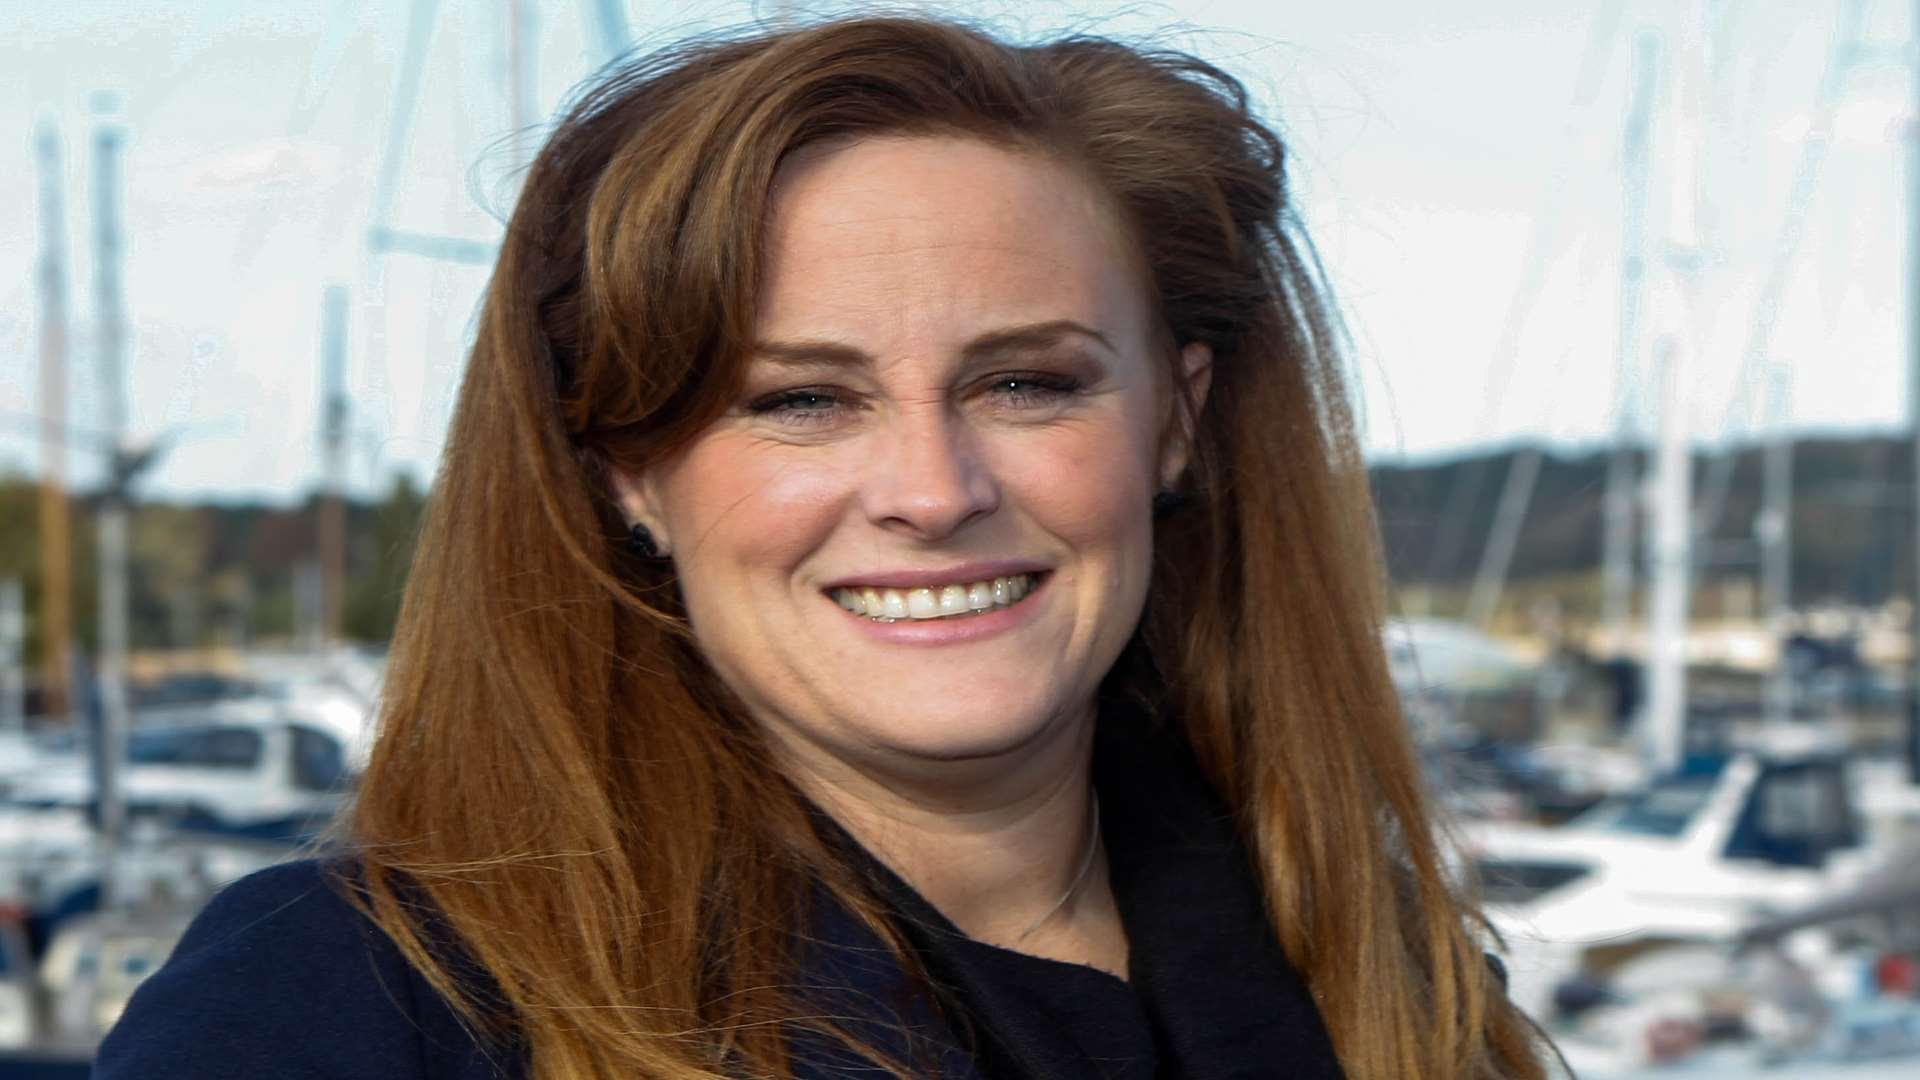 Kelly Tolhurst, MP for Rochester and Strood.